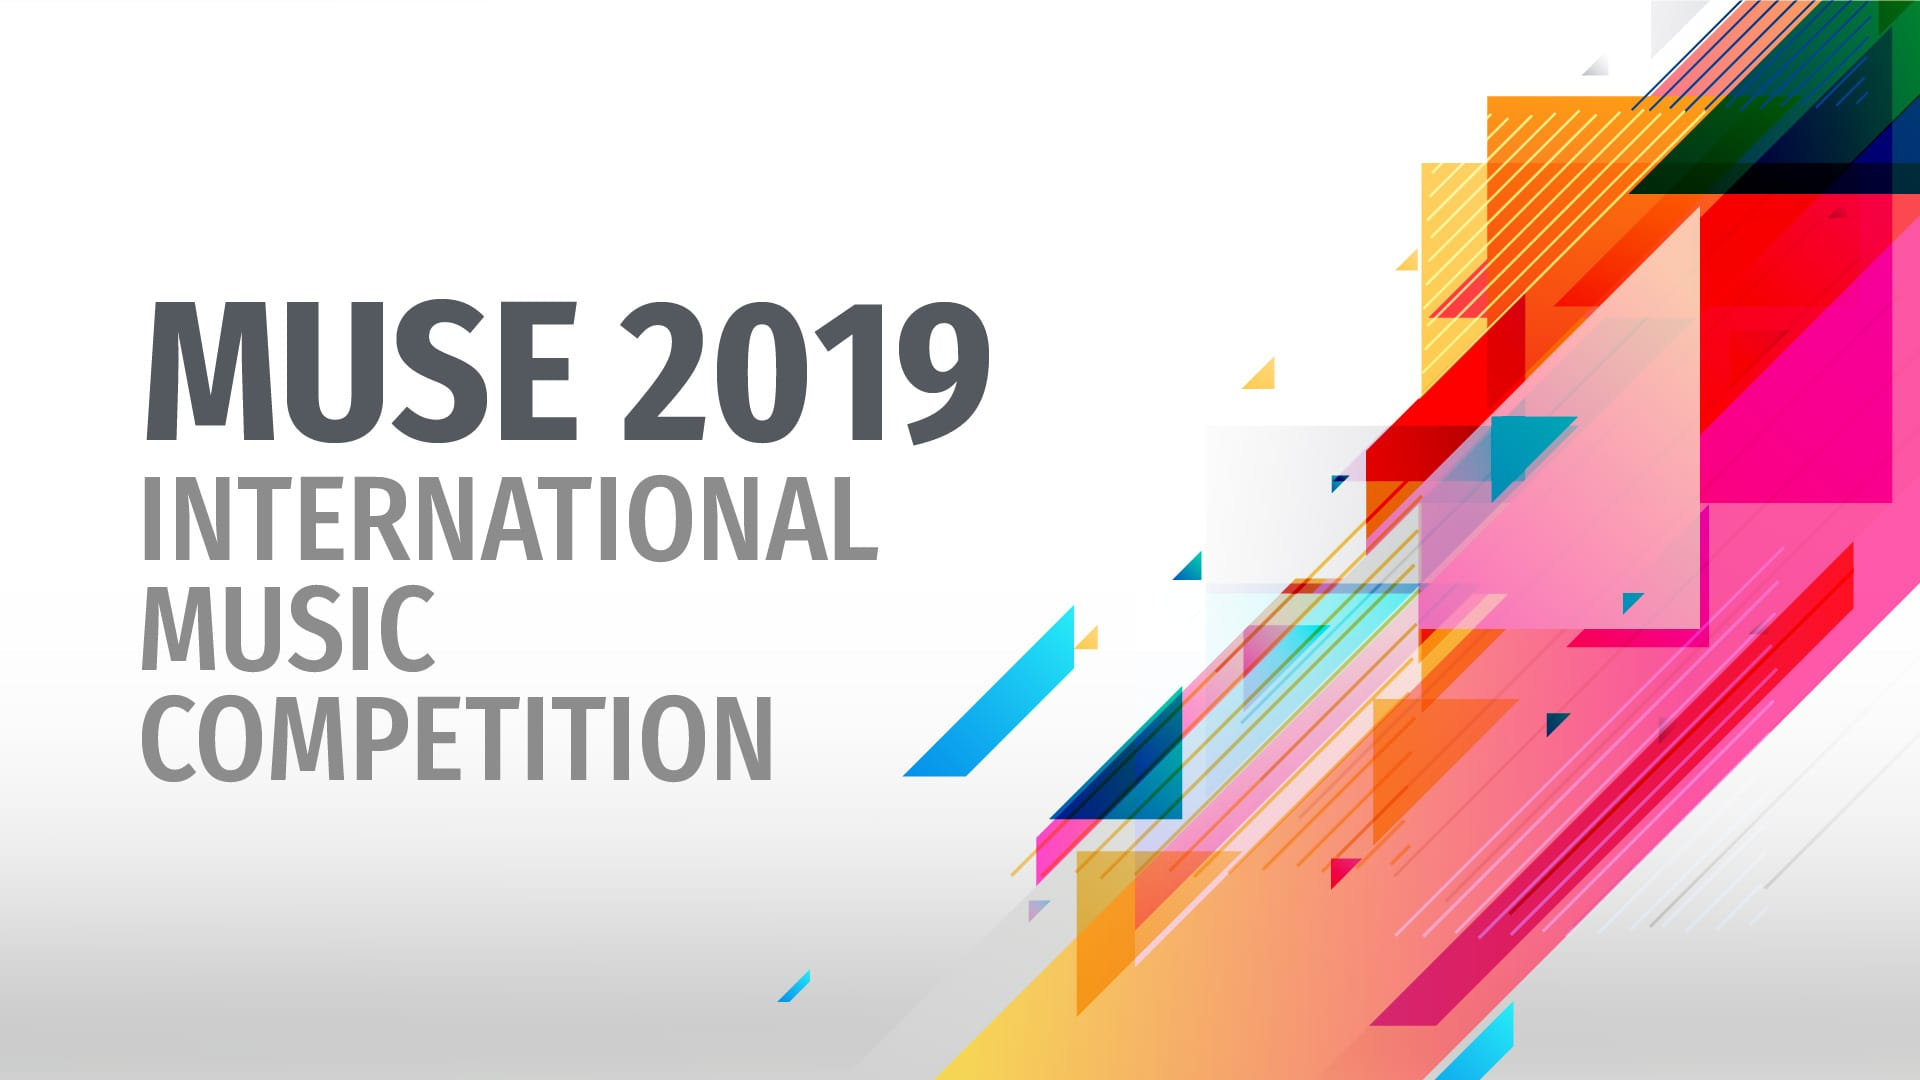 Muse 2019 International Music Competition